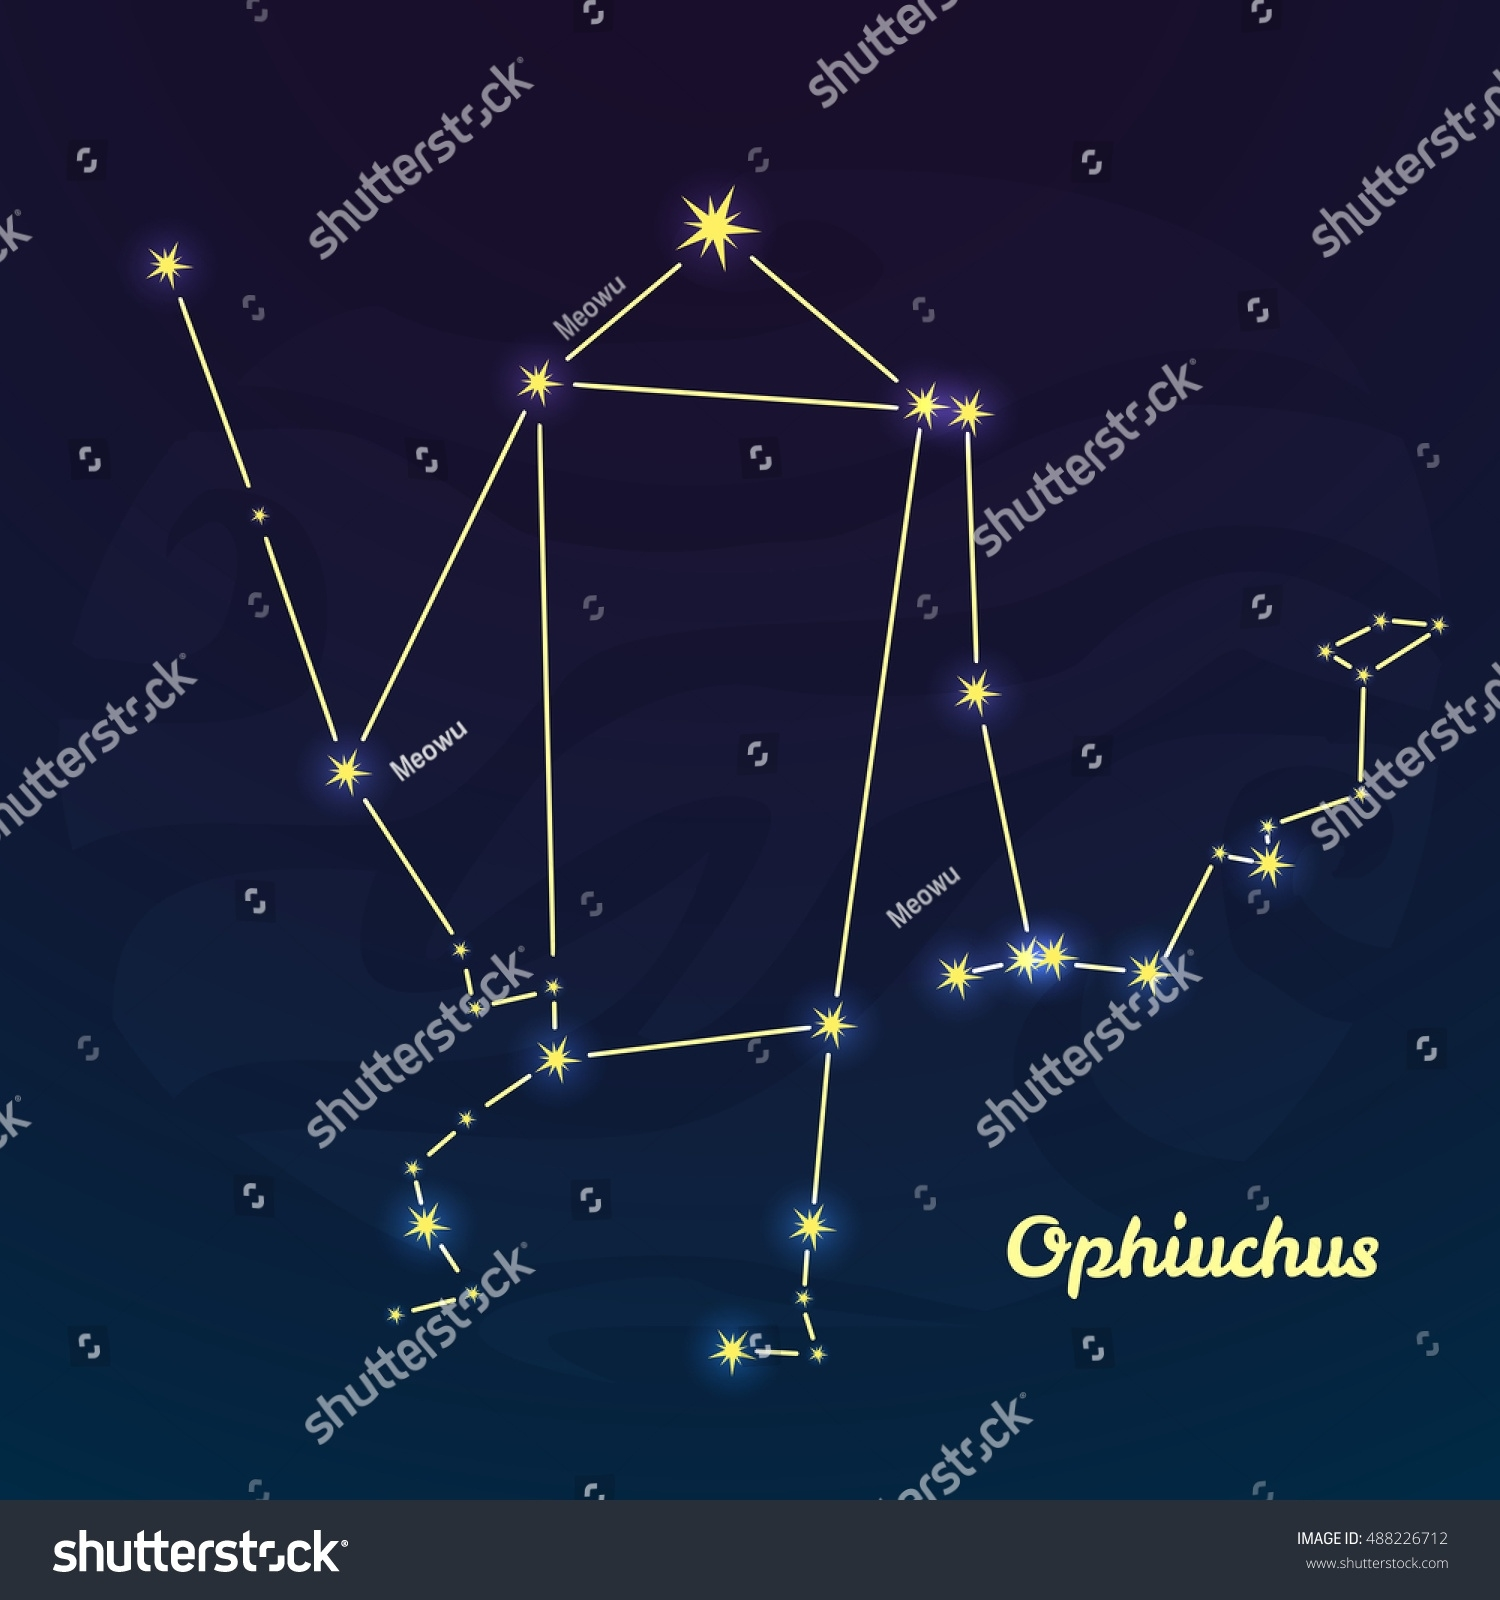 New Zodiac Sign Ophiuchus Vector Illustration Stock Vector (Royalty New Zodiac Calendar Ophiuchus